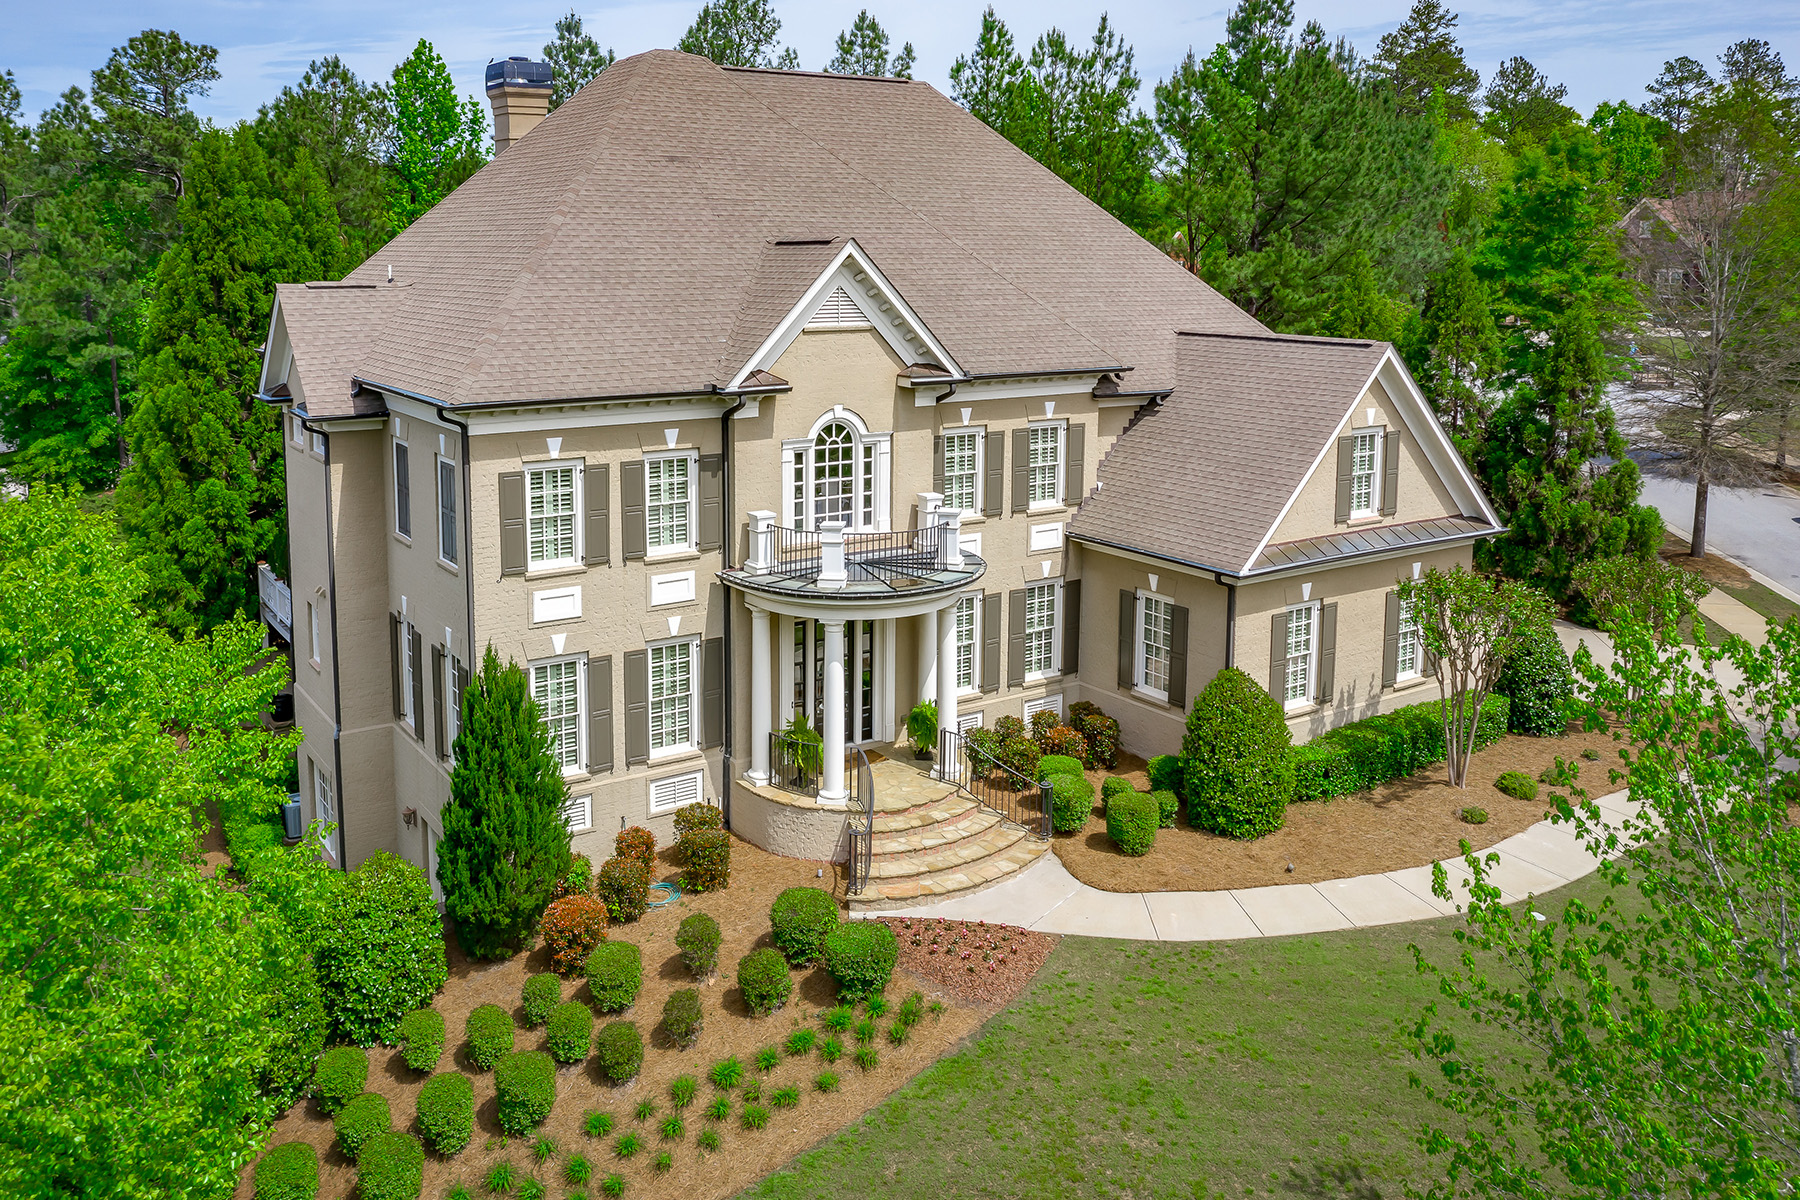 Single Family Homes for Sale at Grand Brick Estate Home in Prestigious Governors Towne Club 19 Troup Court Acworth, Georgia 30101 United States